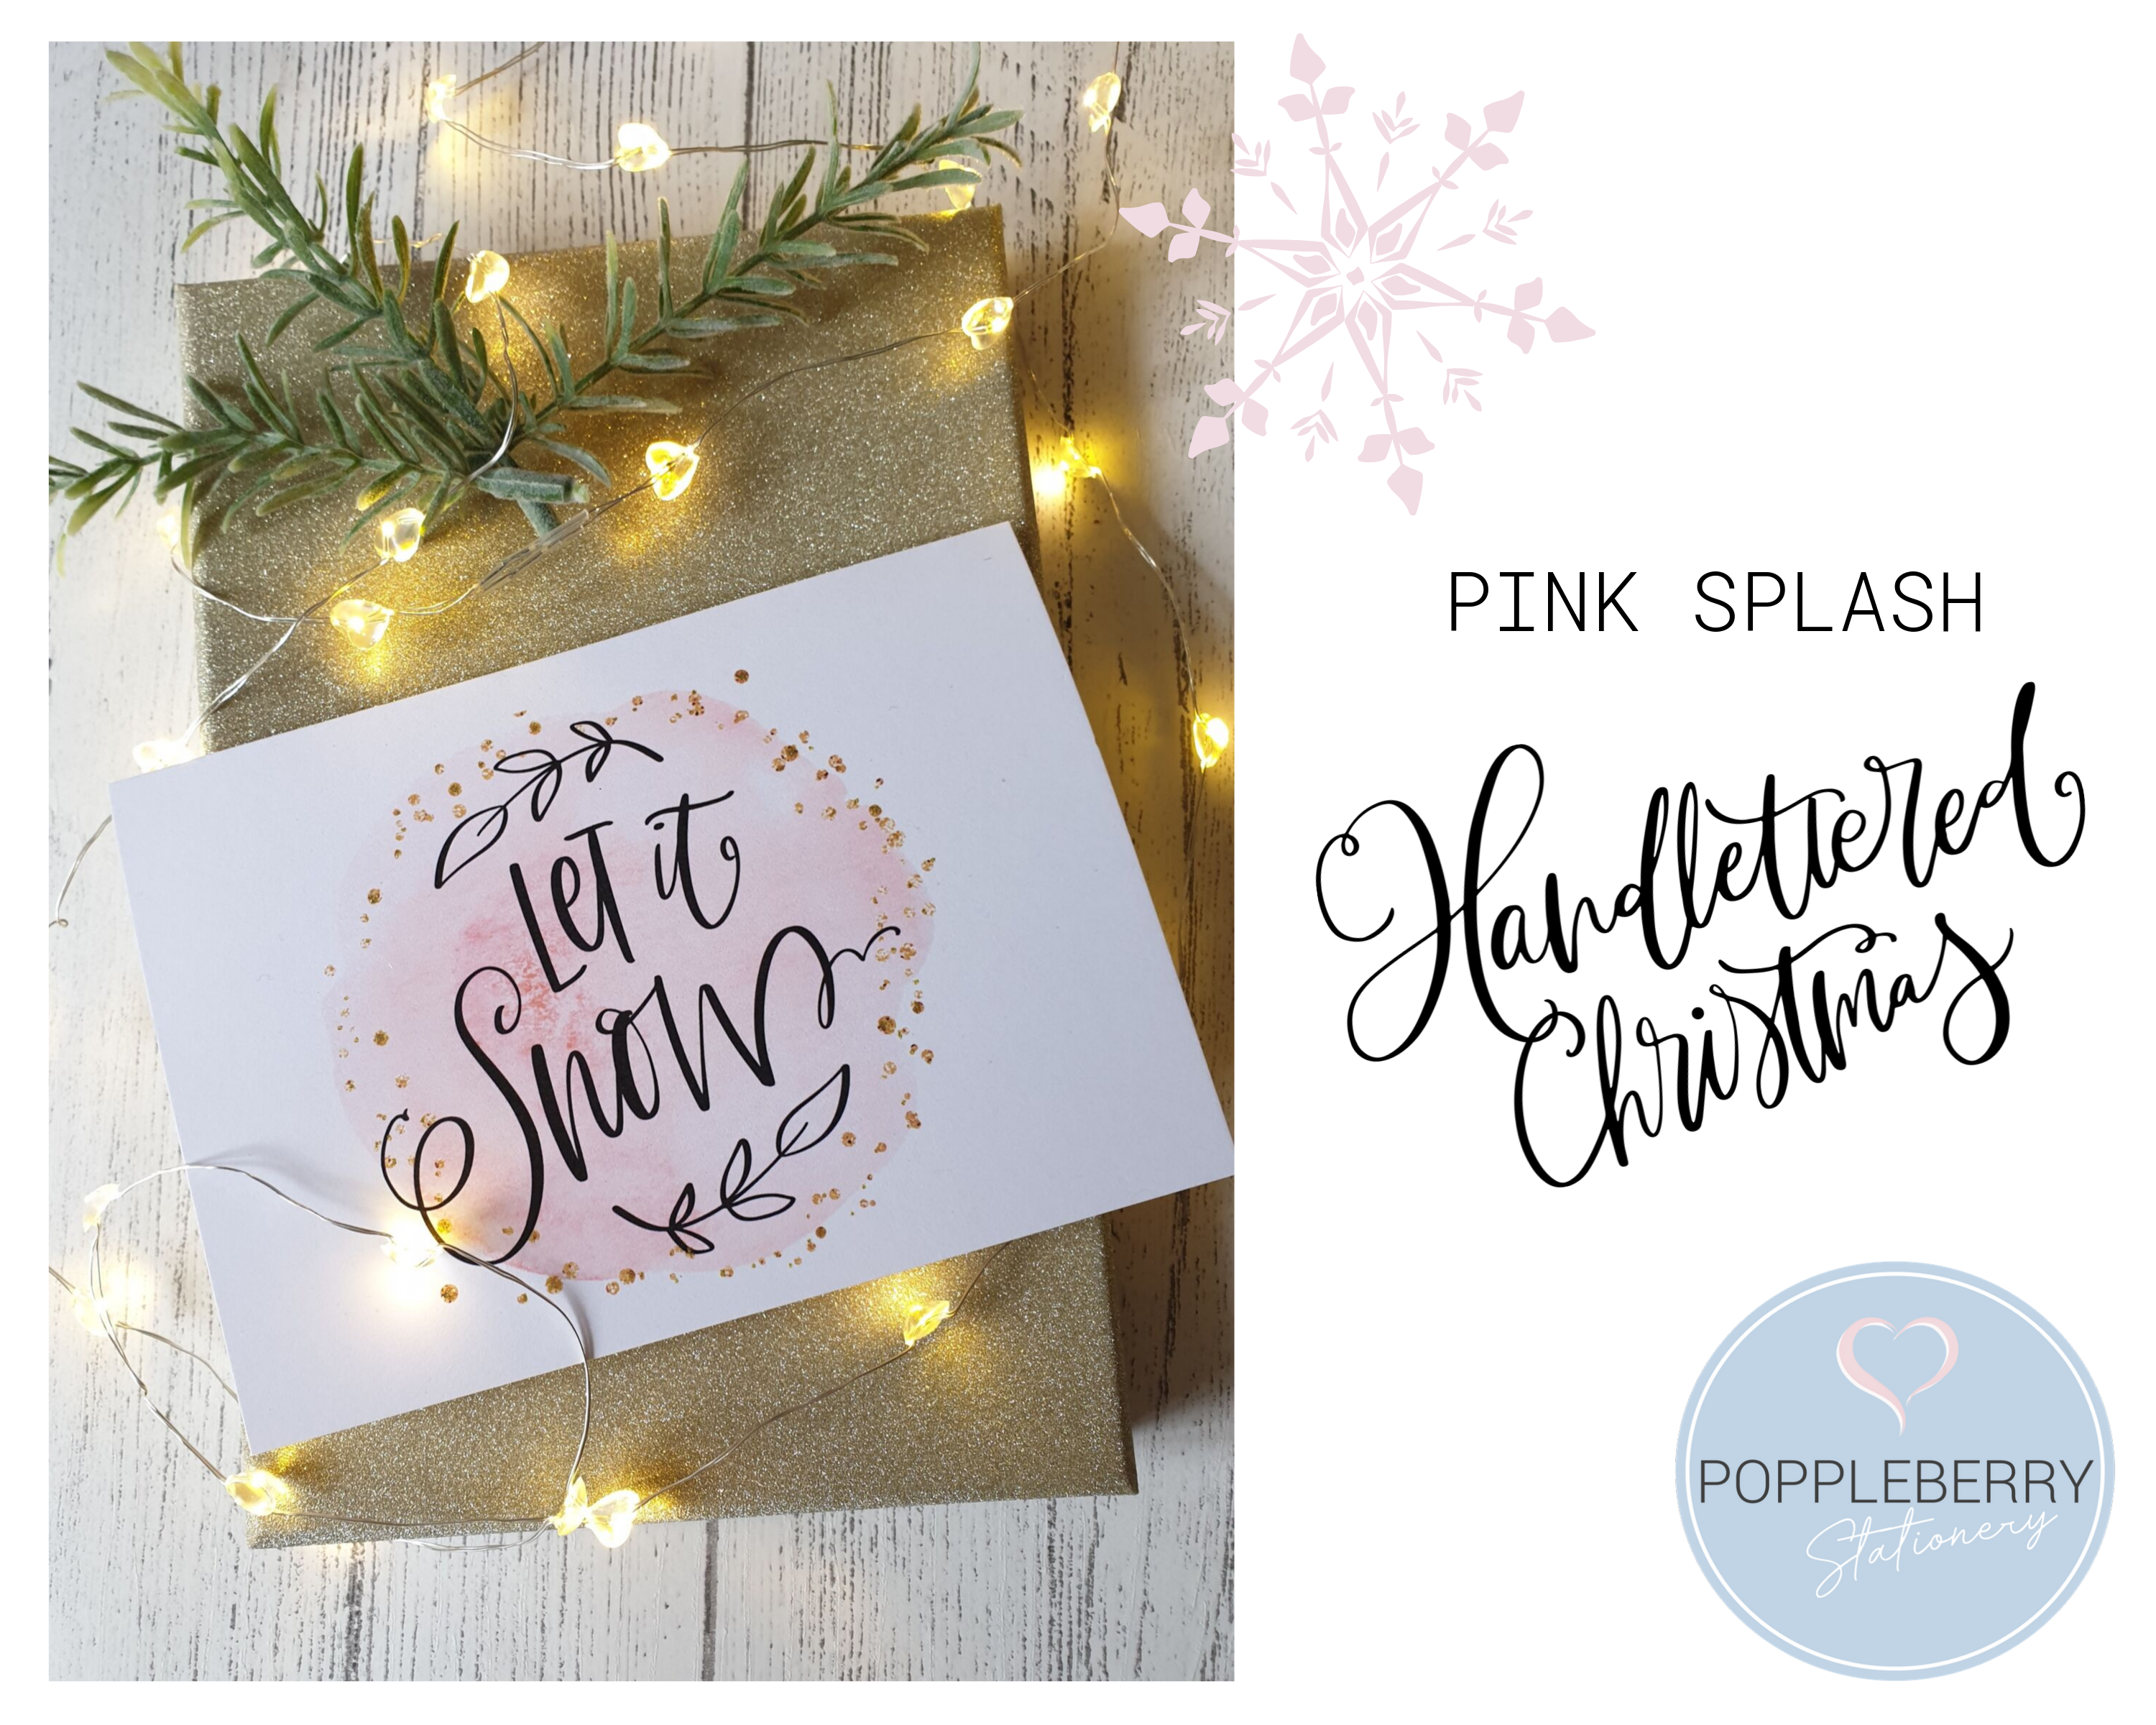 Poppleberry A6 'Let it Snow' Modern Pink Watercolour Splash Christmas Card with Gold Sparkle Glitter.